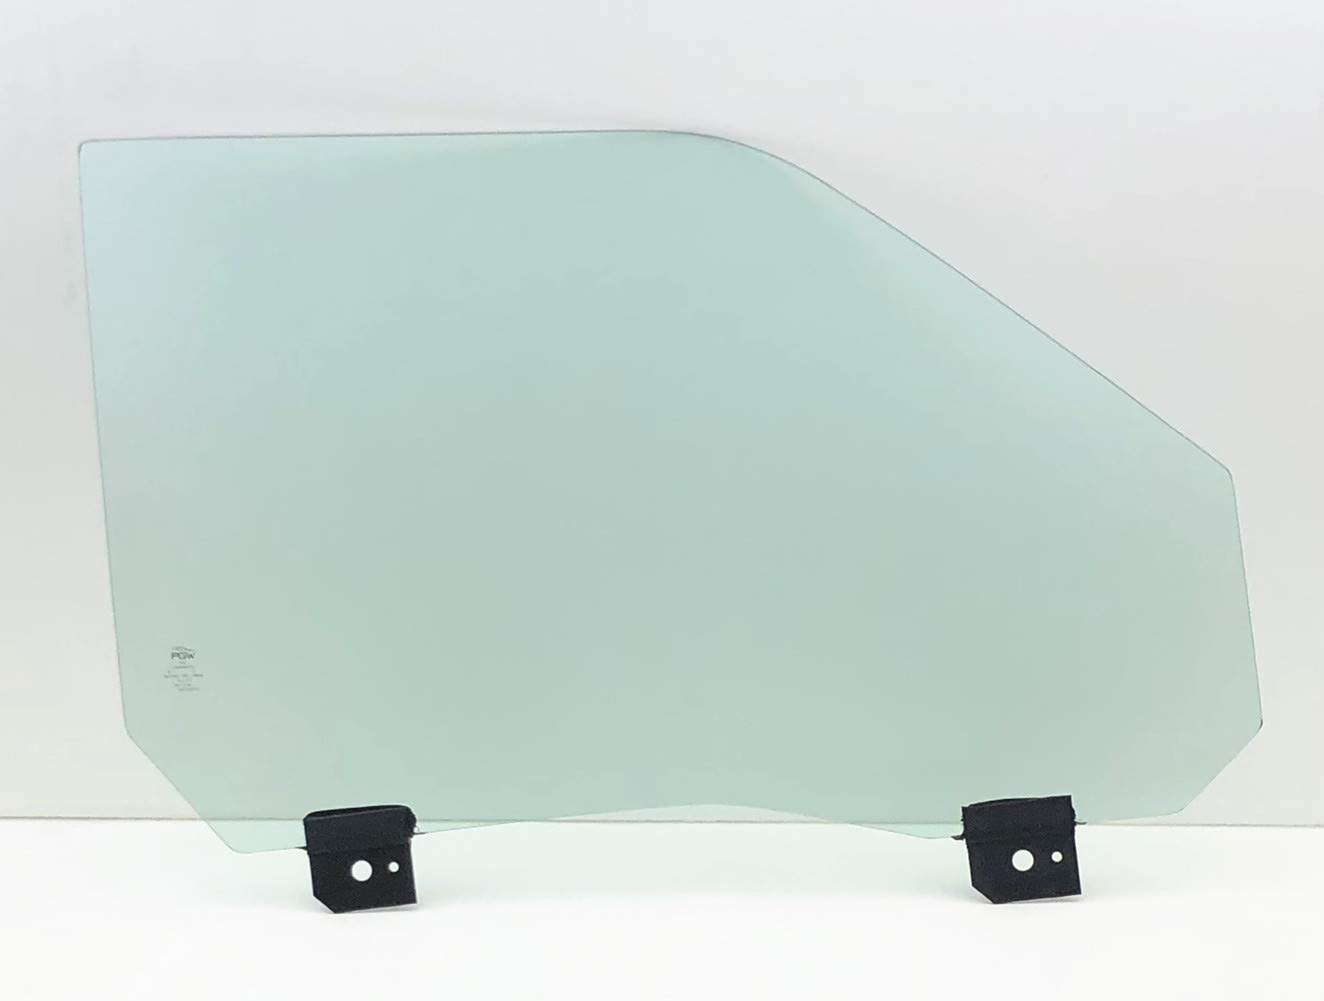 NAGD Fits 2009-2018 Ford Flex Passenger Right Side Front Door Window Glass Laminated